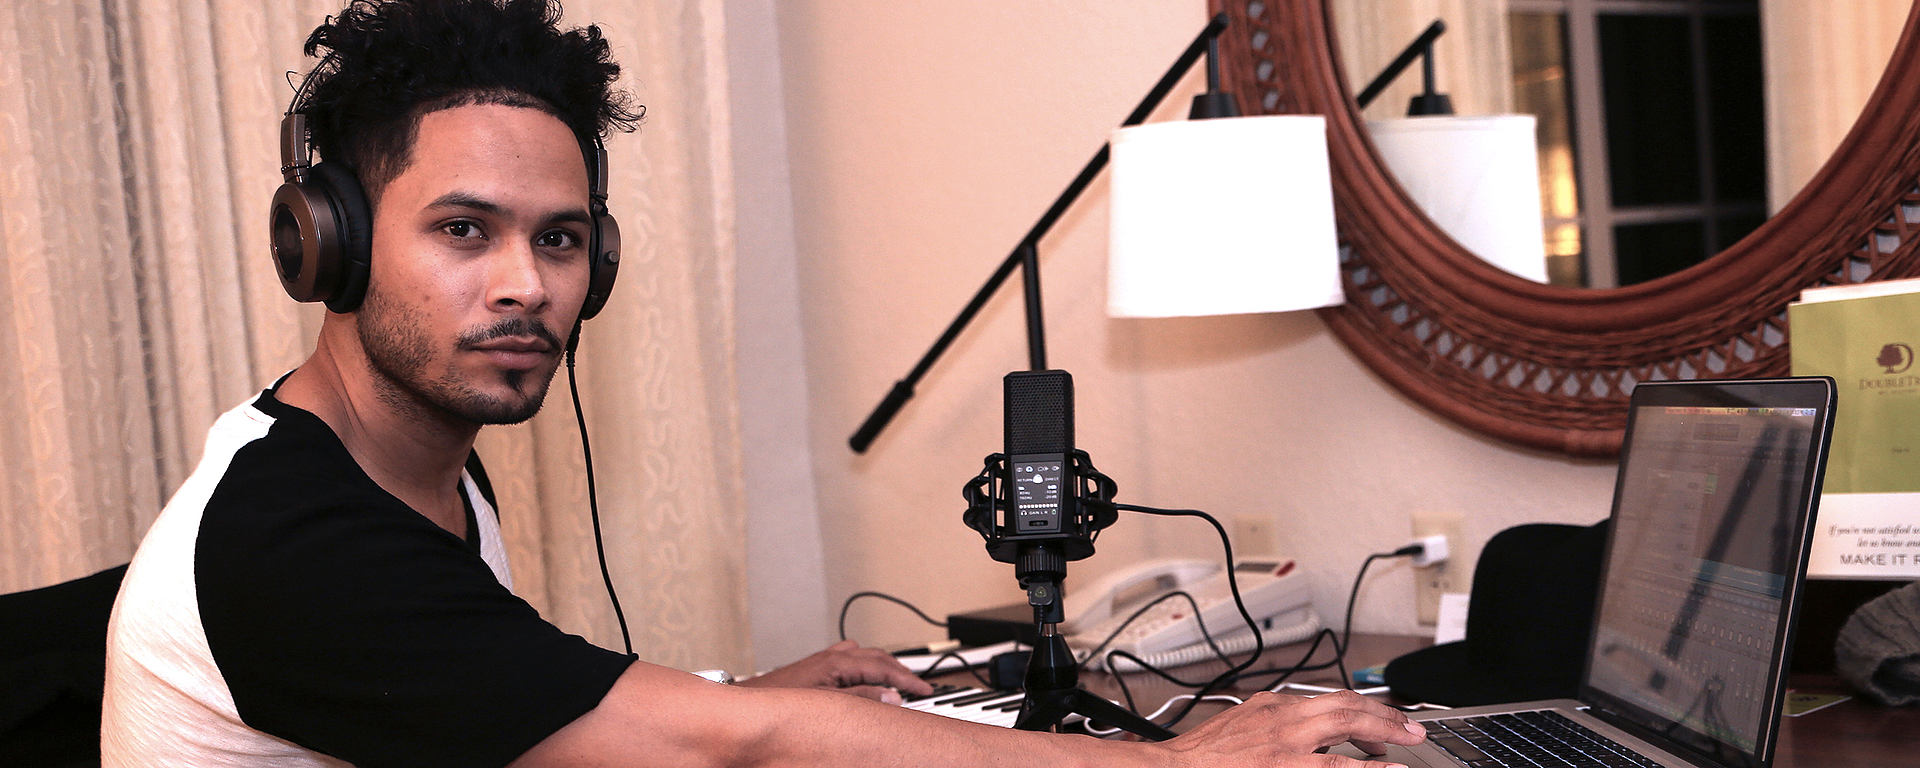 Steve Styles in his hotel Room using the DGT 650 USB microphone and interface